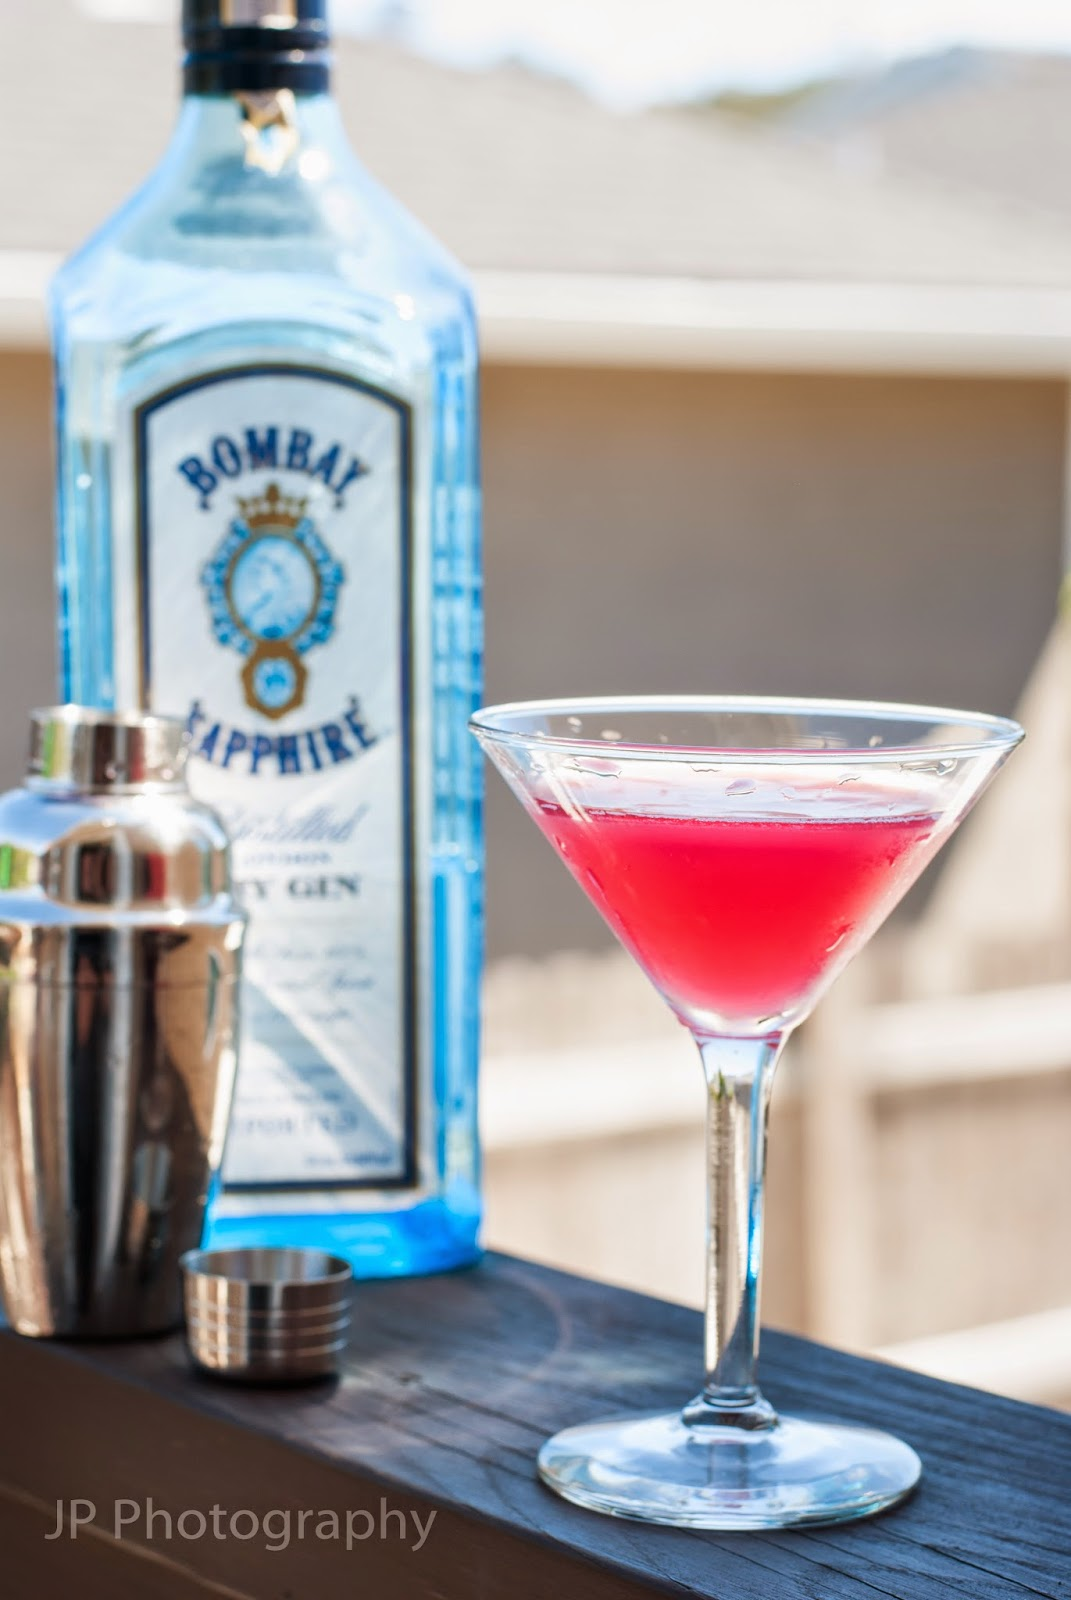 cranberry gimlet martini cocktail, gin, cranberry juice, lime juice, bombay sapphire gin